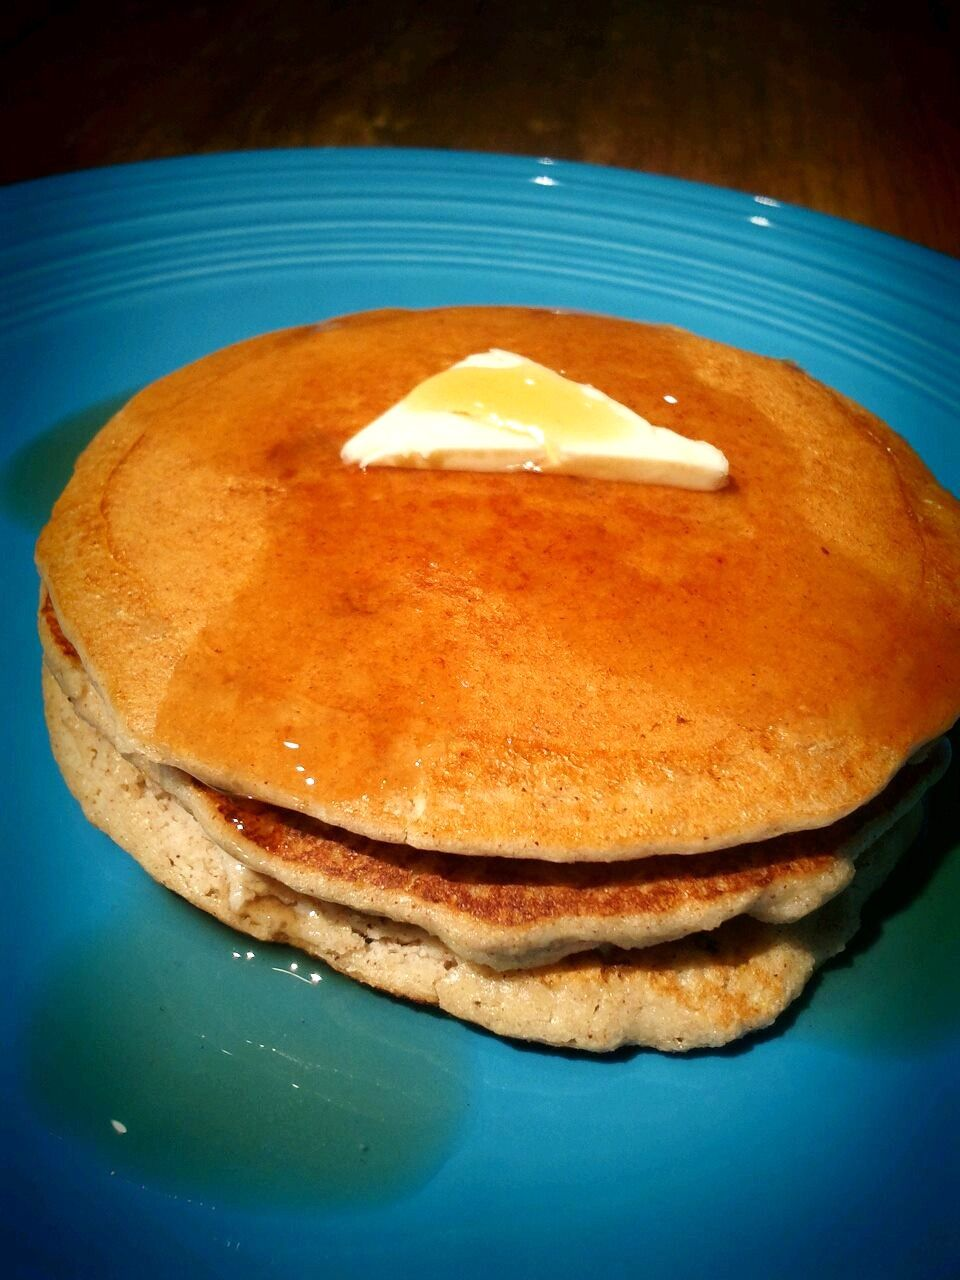 My hcg diet recipes hcg diet p3 phase 3 recipe oh so good pancakes my hcg diet recipes hcg diet p3 phase 3 recipe oh so good pancakes forumfinder Images